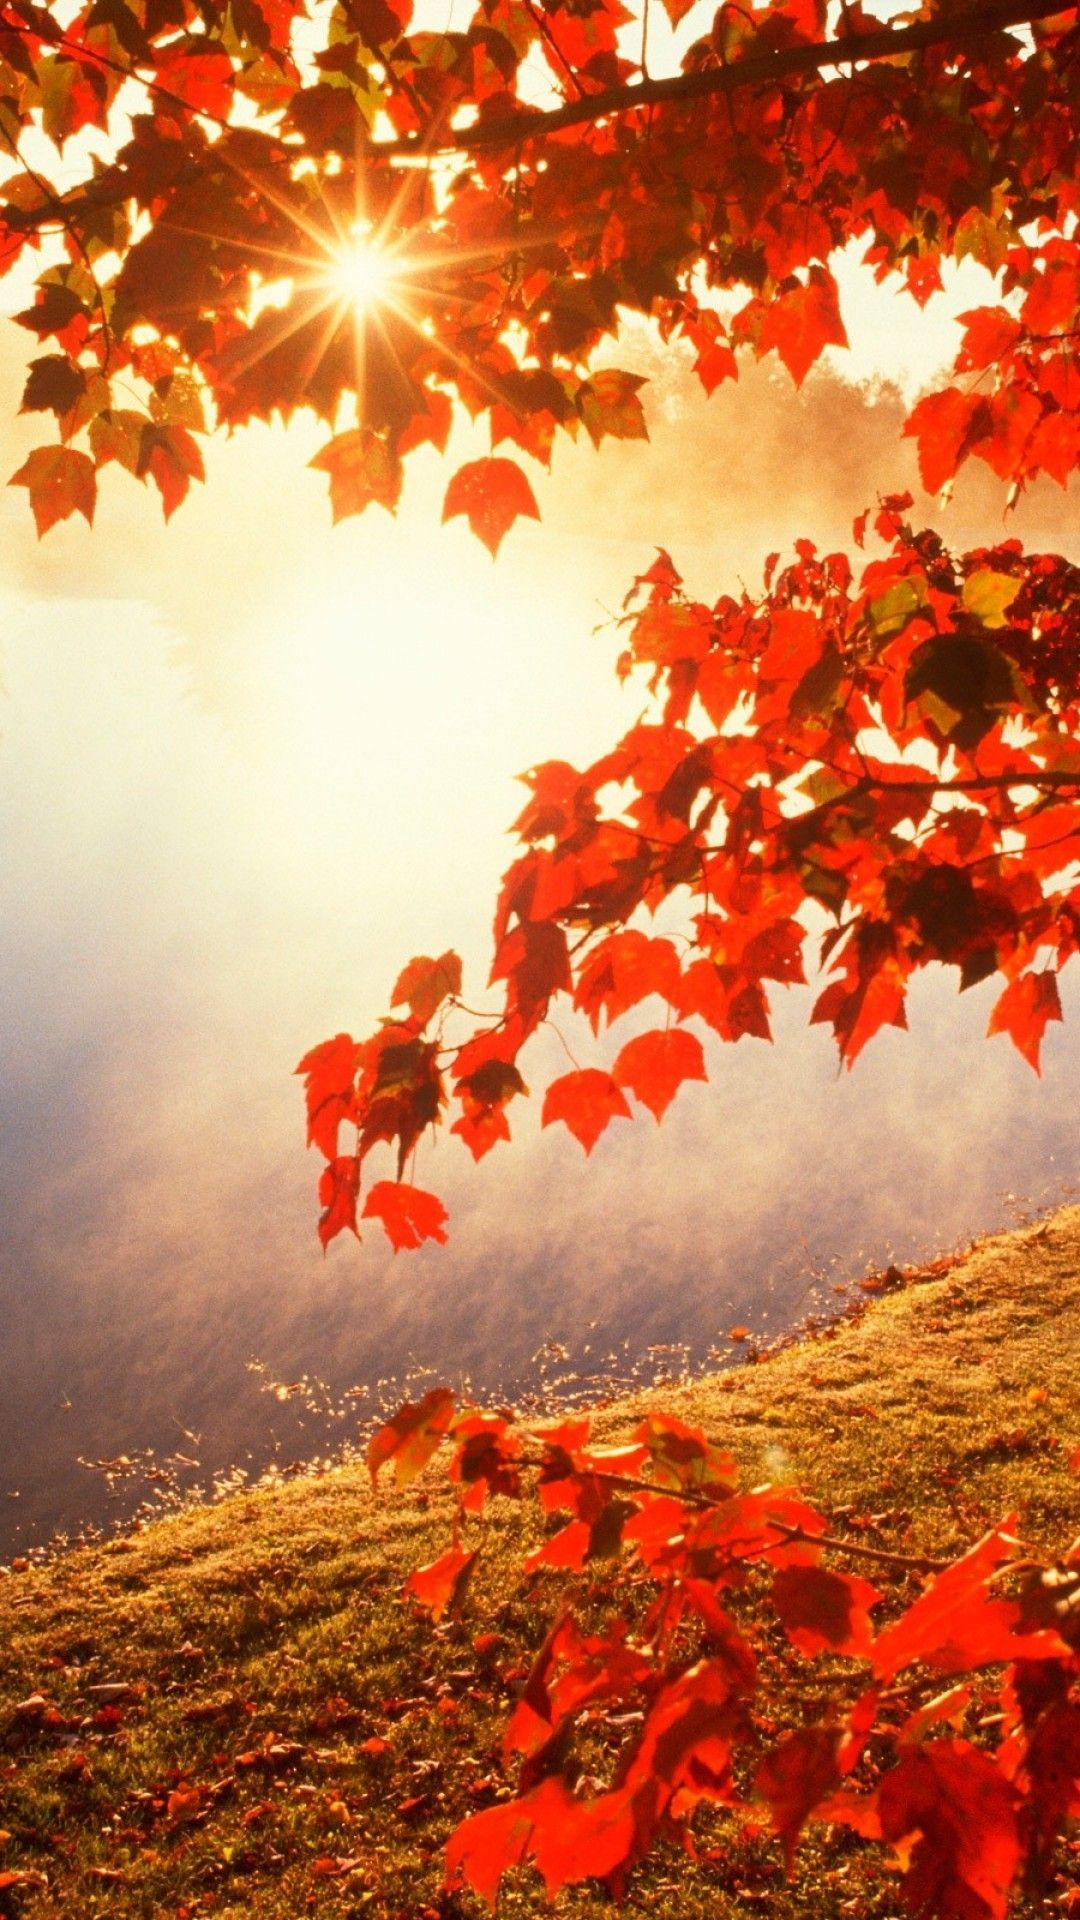 Wallpapers Collection : +37 Best Free HD autumn wallpapers iphone Backgrounds to Download